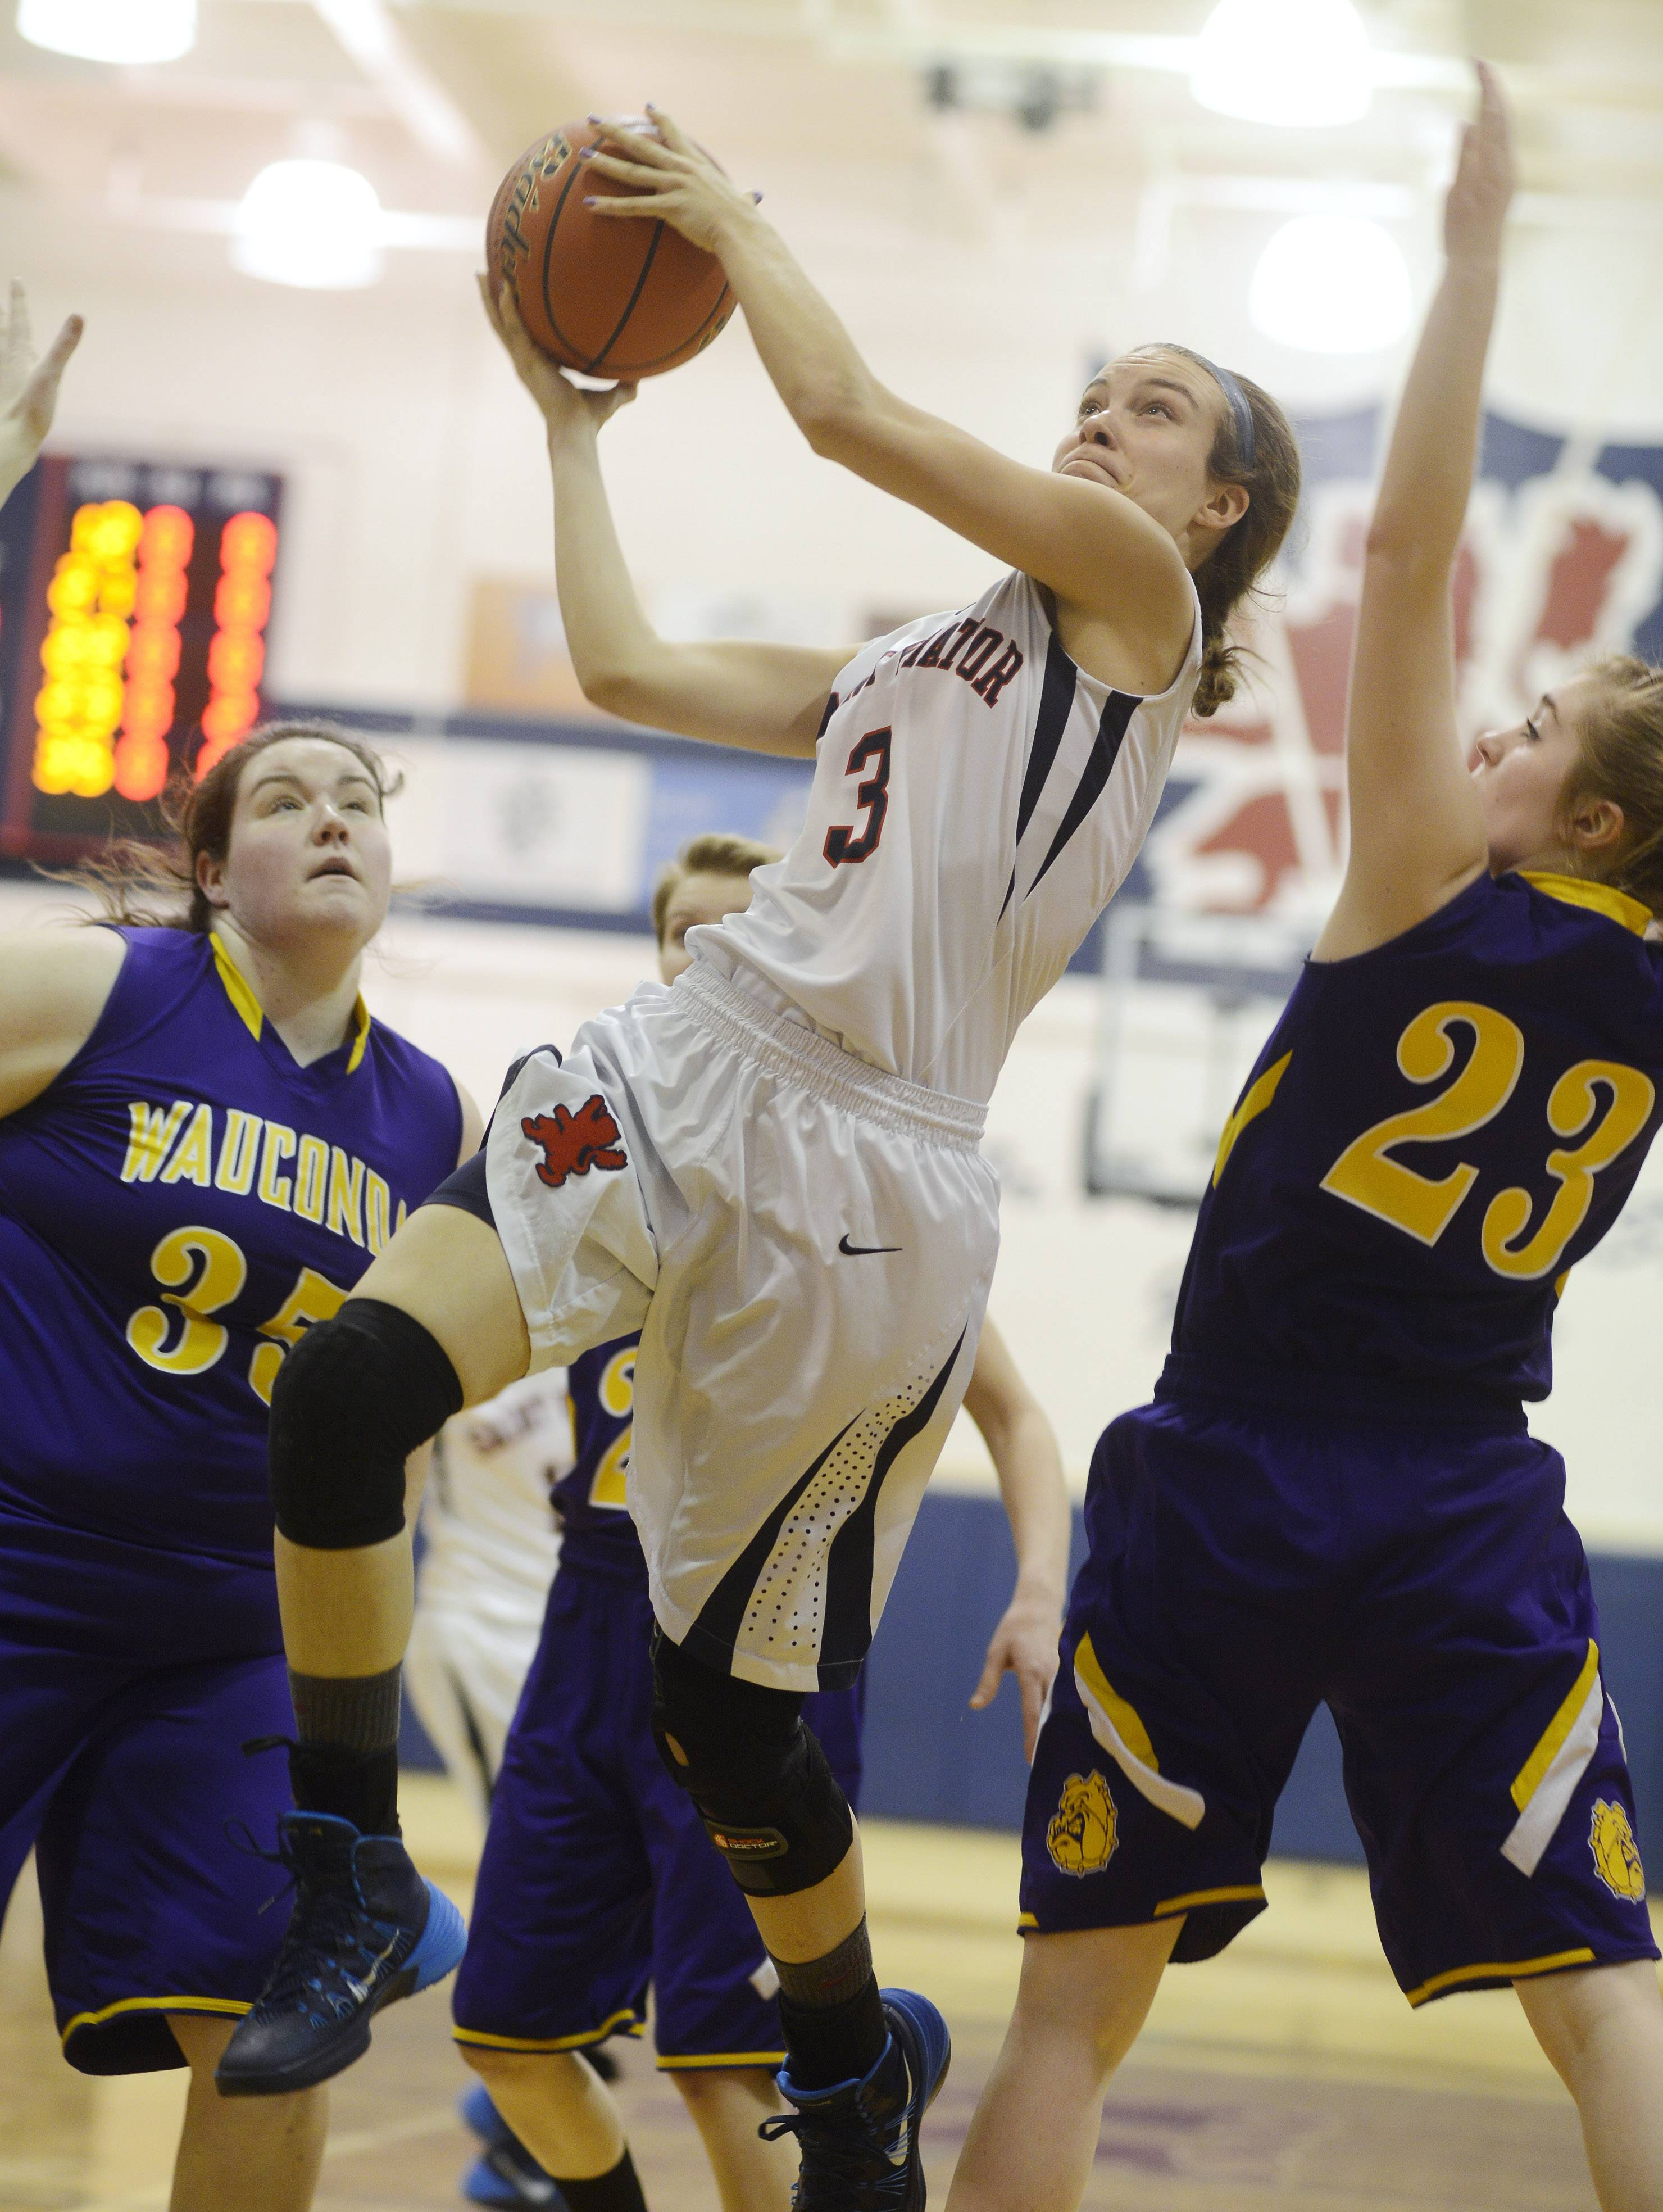 St. Viator's Kelsey Trimble, middle, drives to the basket against Wauconda defenders Dani Sturm, left, and Jessie Wood during Wednesday's game in Arlington Heights.